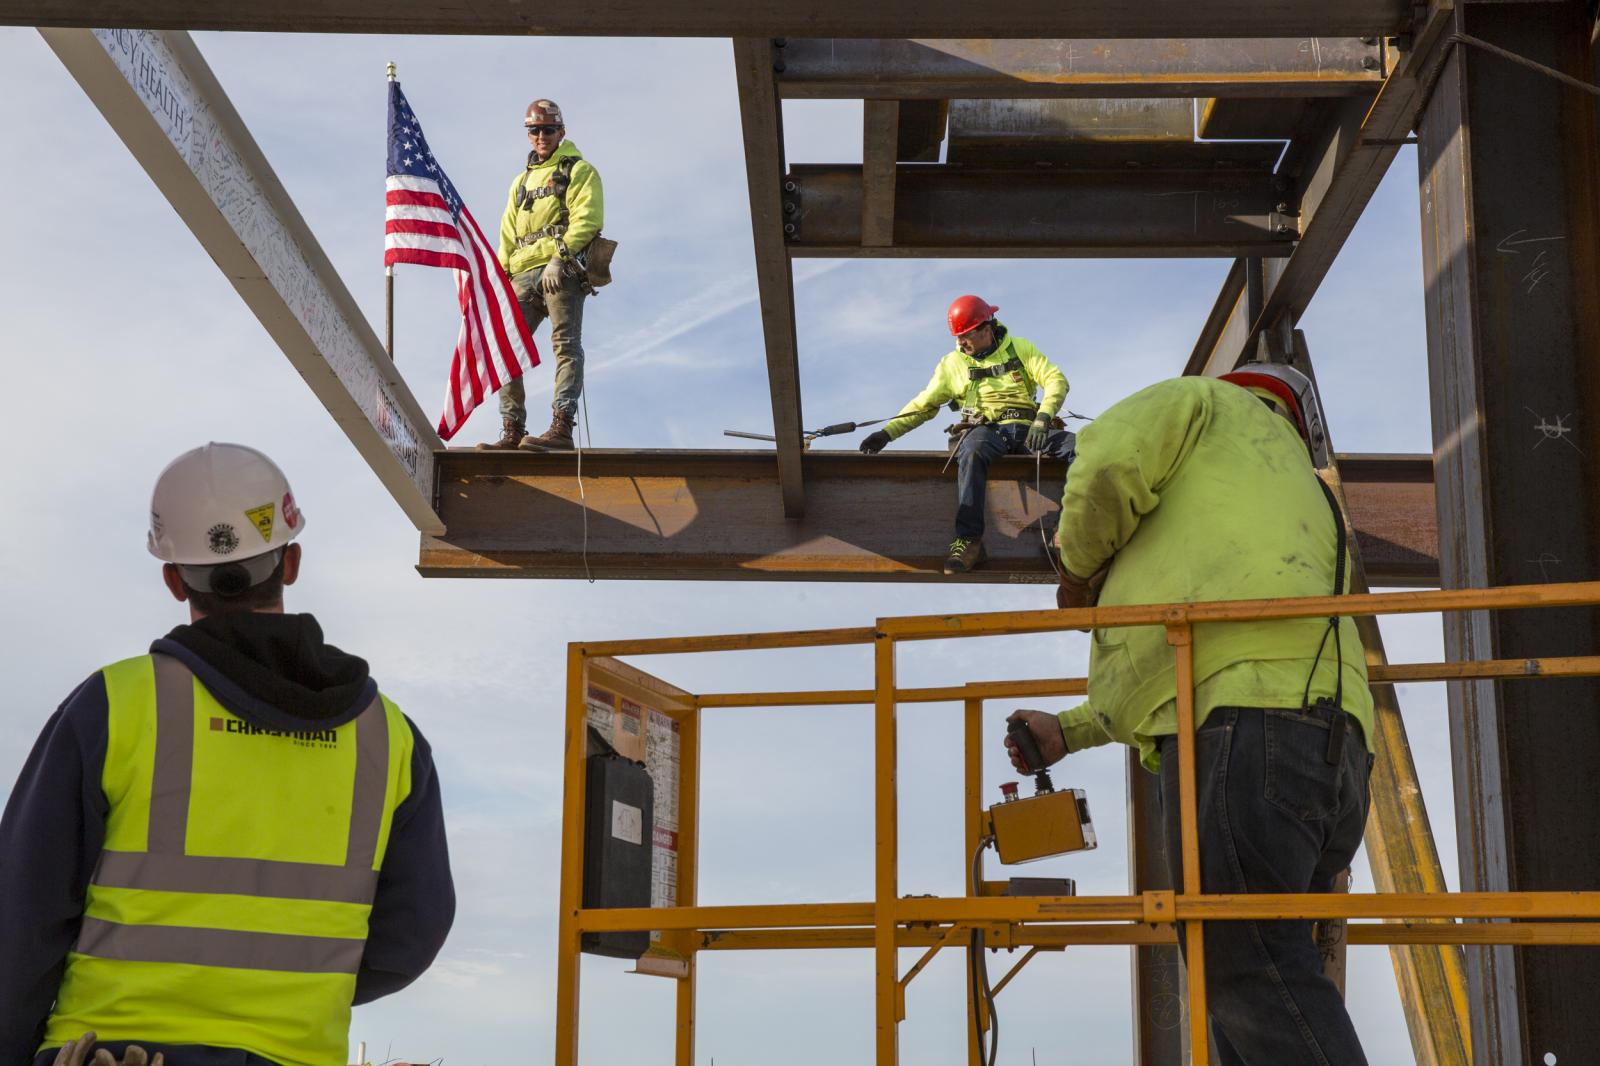 Crews put the last structural beam into place at the construction site at the 10-story Mercy Health medical center in Muskegon, Mich. on Oct. 26, 2017. The $271 million dollar project is expected to be completed in the summer of 2019. The center will have an estimated 267 beds.